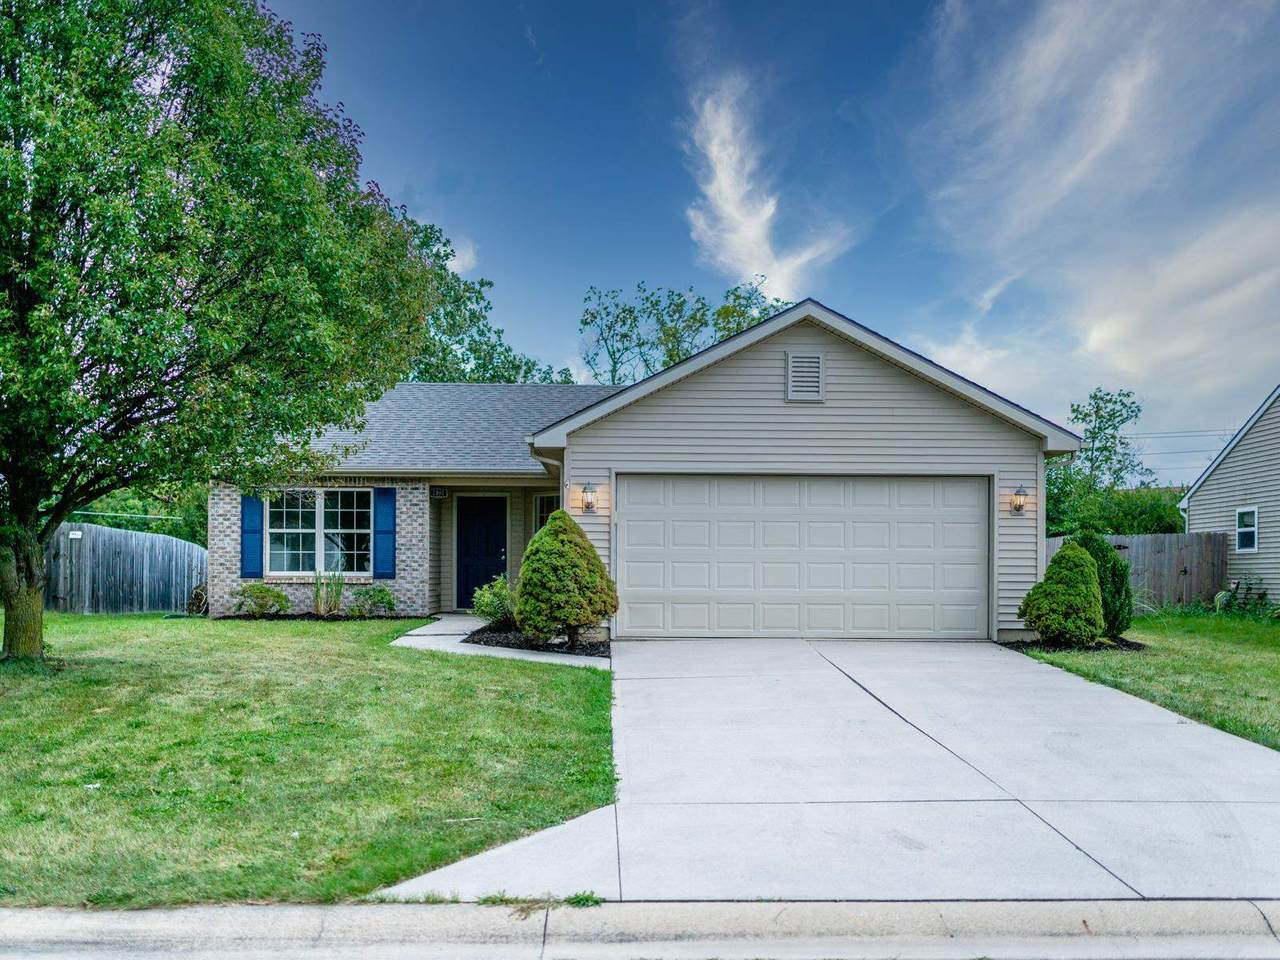 7307 Royal Troon Court - Photo 1